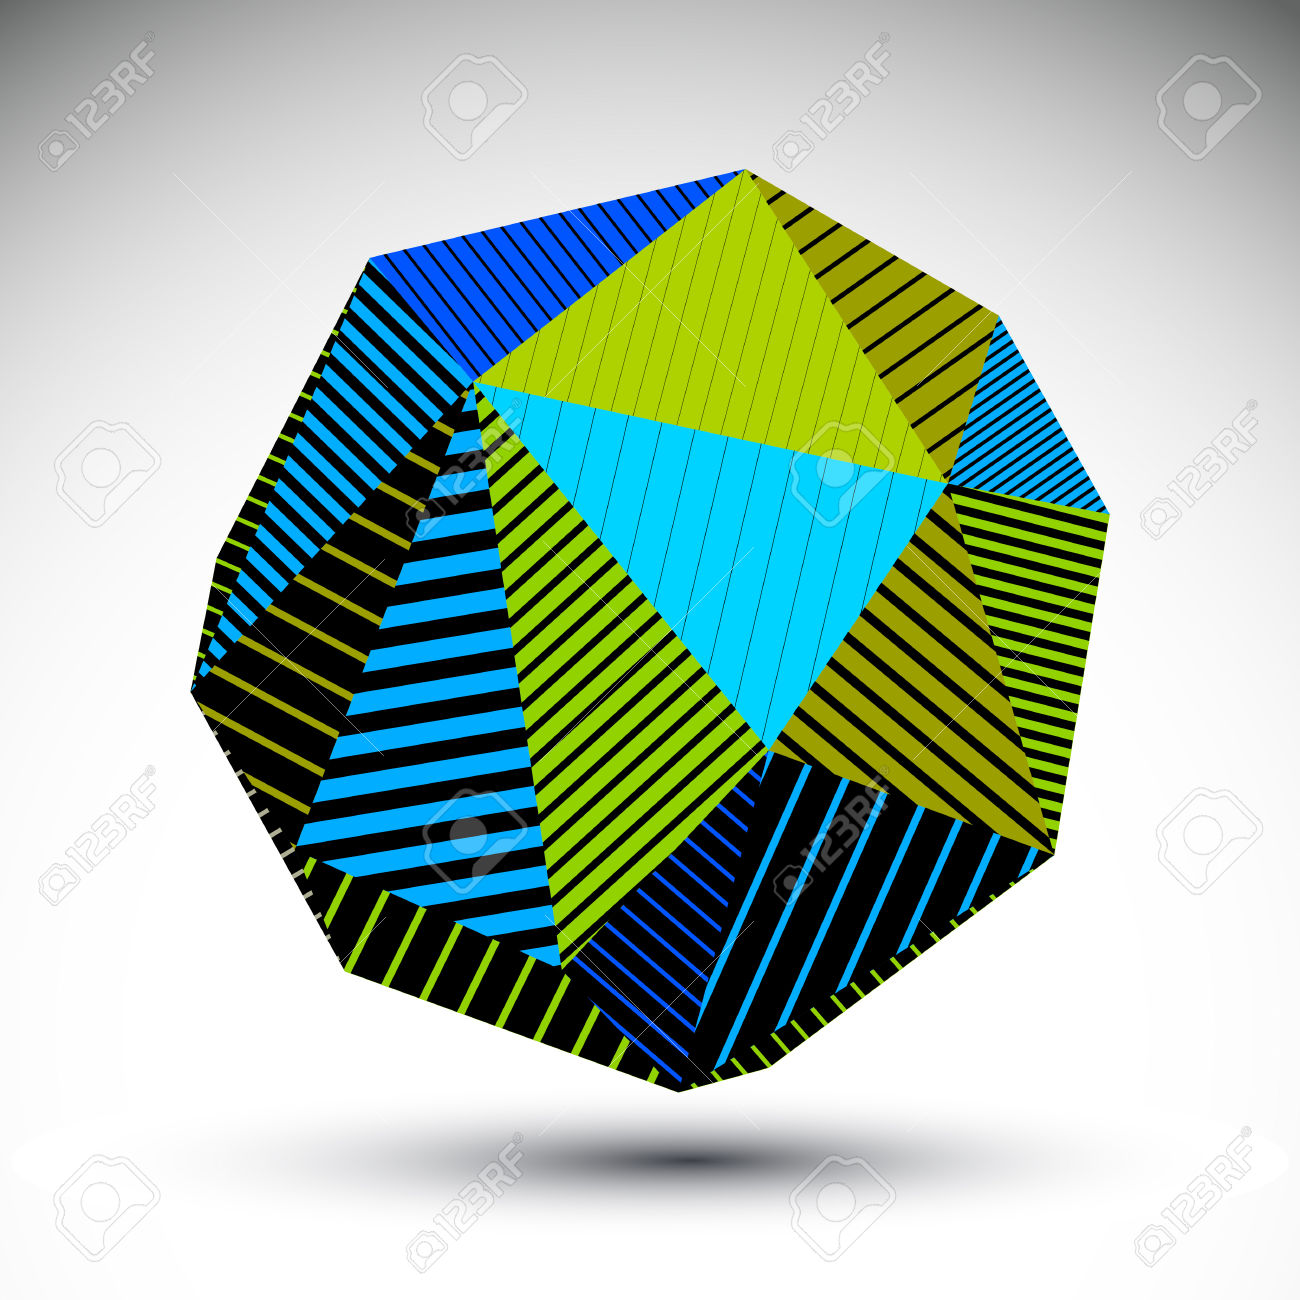 Vivid Abstract 3D Spatial Vector Contrast Figure, Art Spherical.